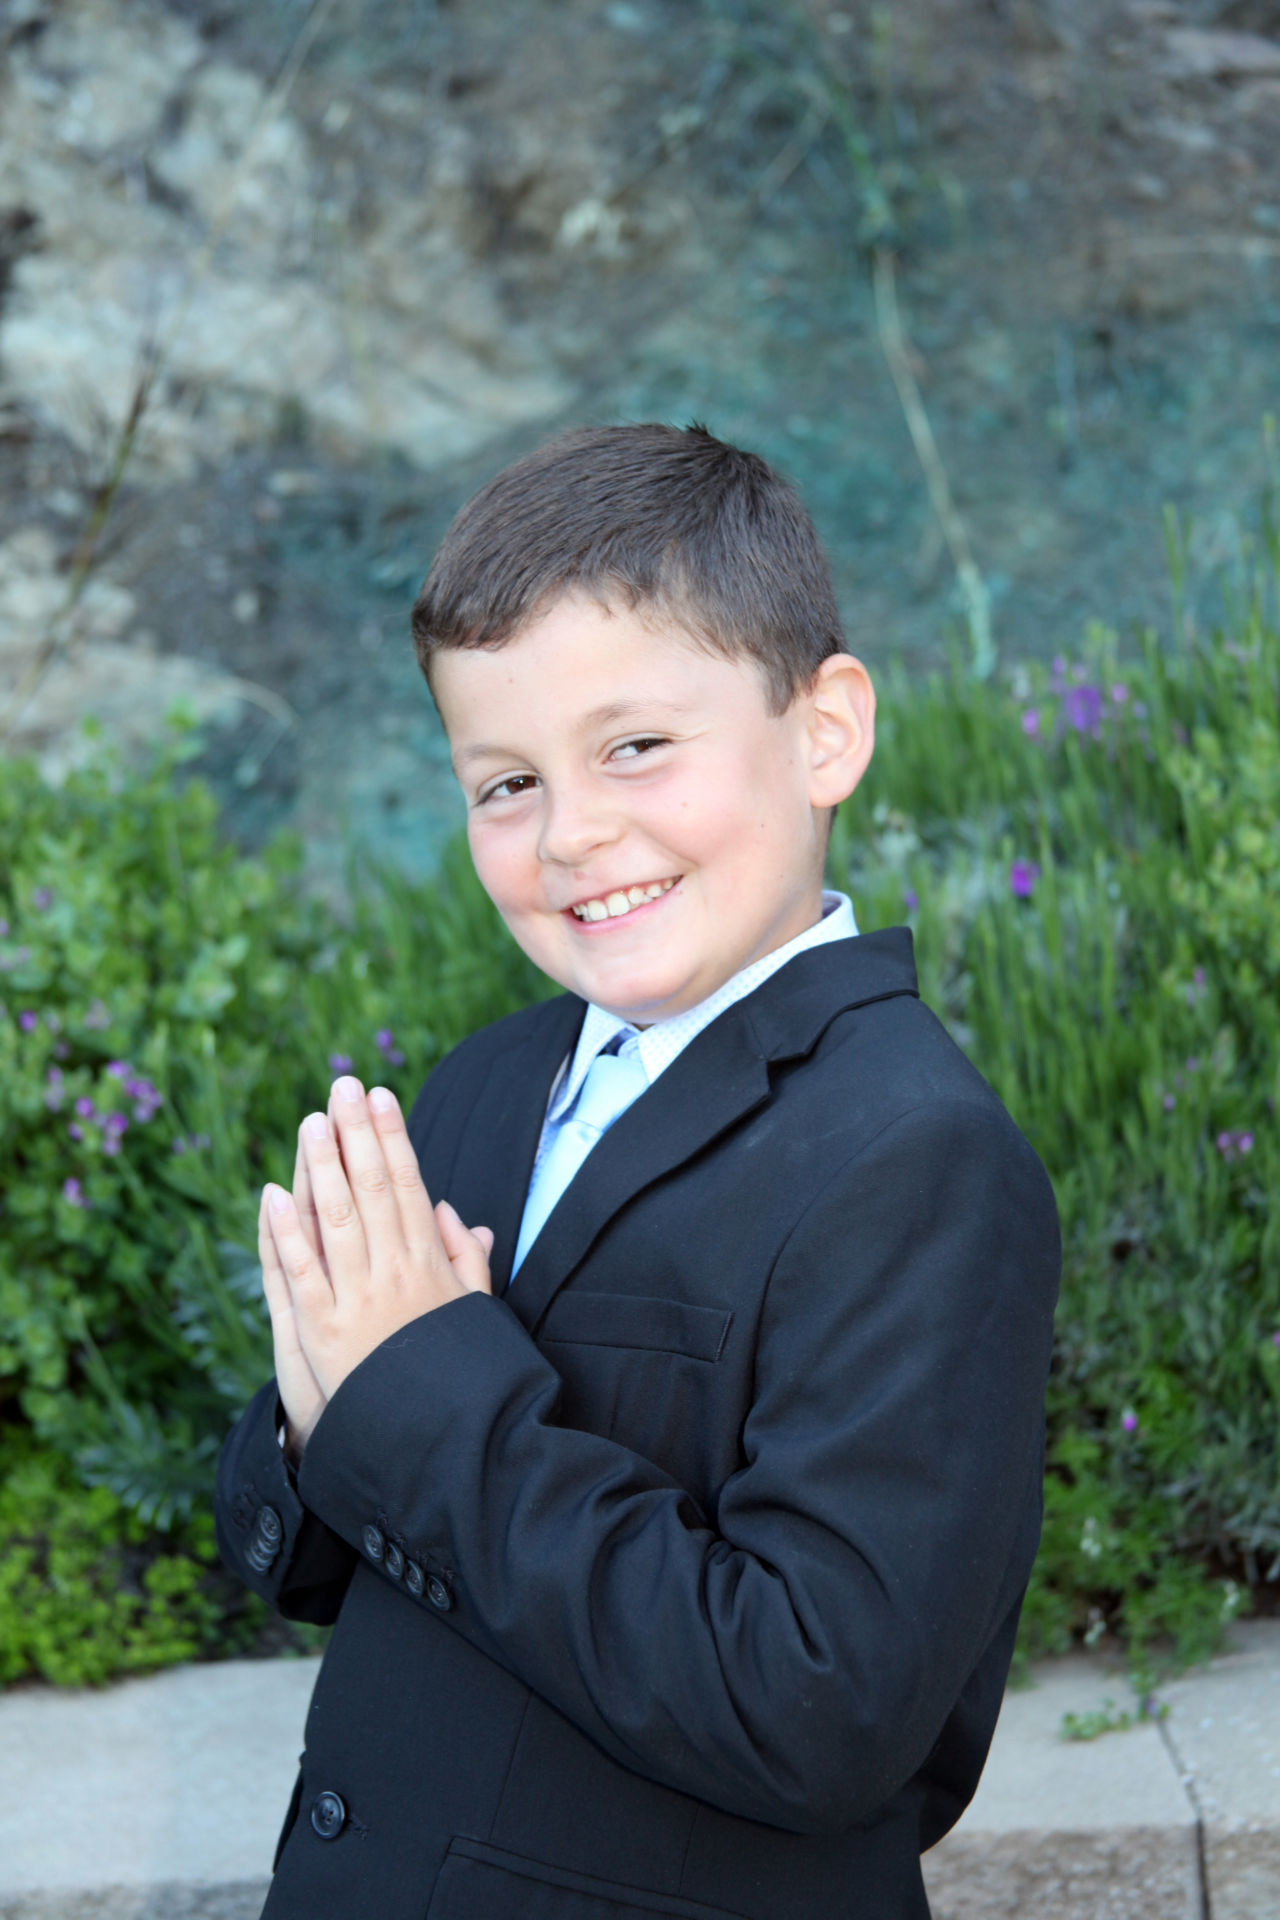 This young gentleman had his First Communion Portrait taken to be treasured for years to come.